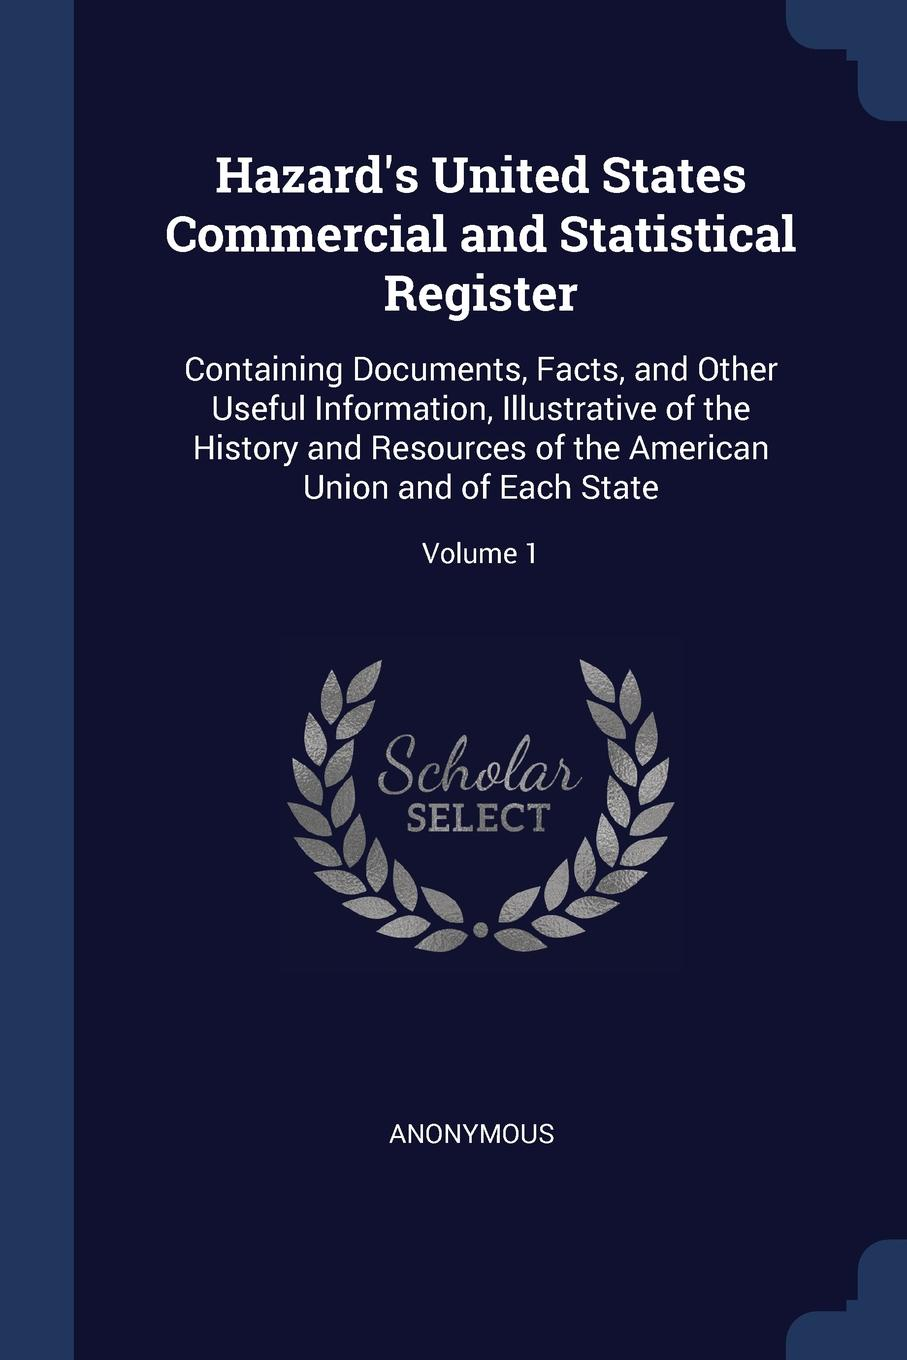 M. labbé Trochon H United States Commercial and Statistical Register. Containing Documents, Facts, Other Useful Information, Illustrative of the History Resources American Union Each State; Volume 1